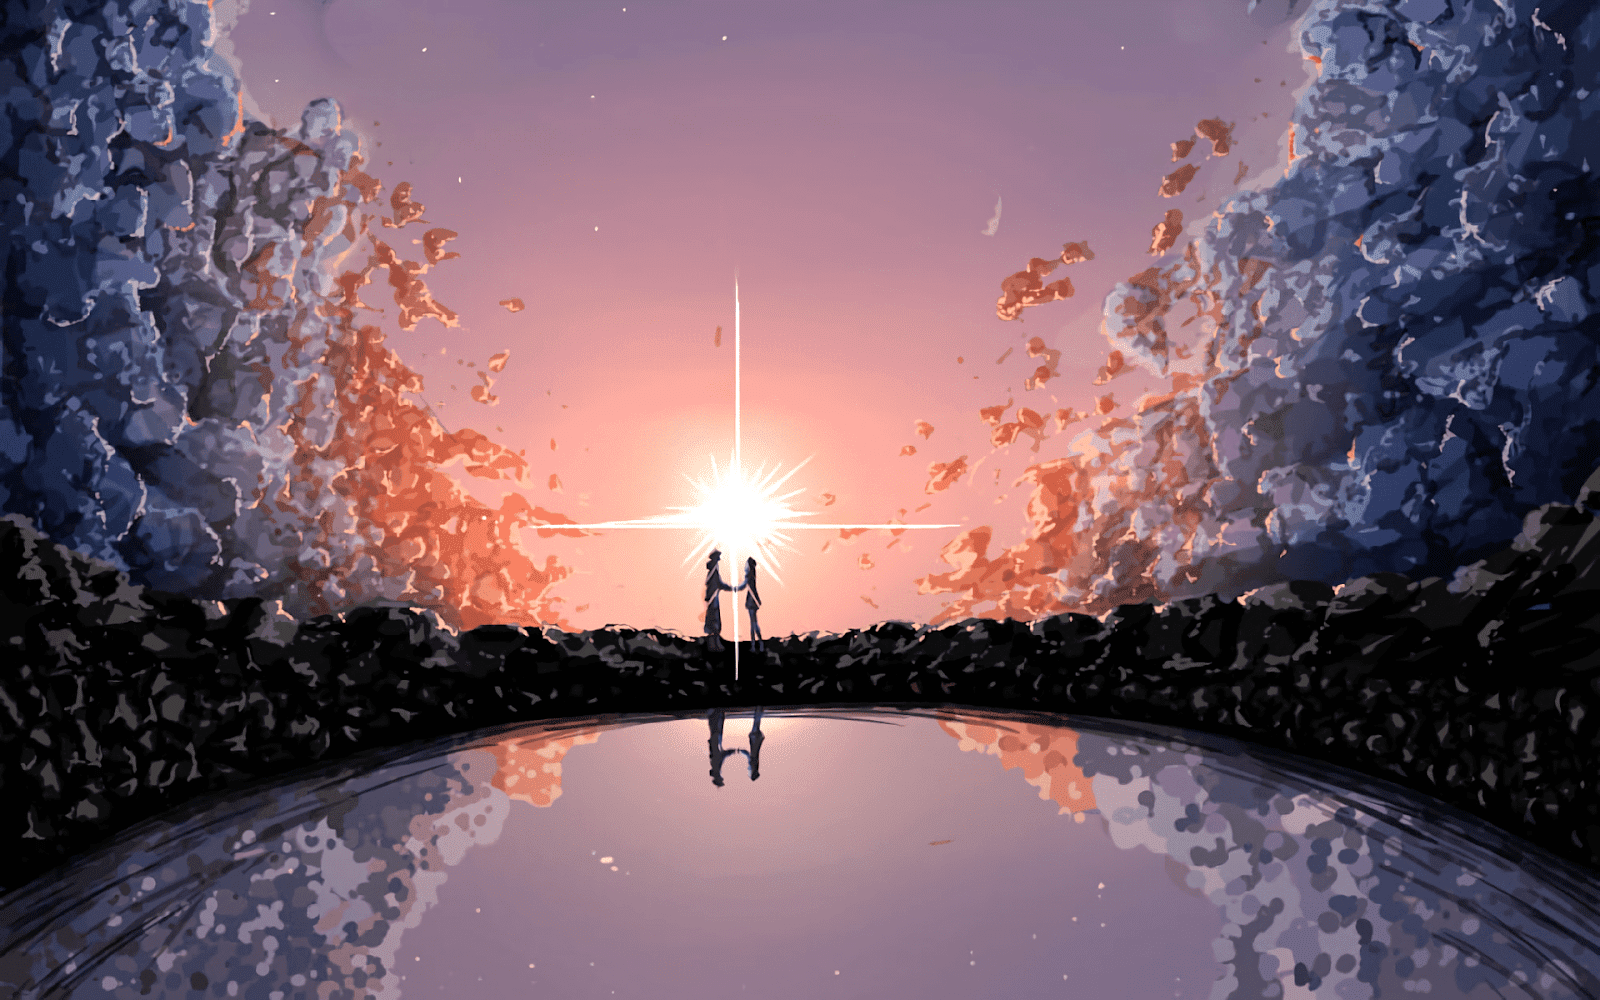 AowVN%2B%25289%2529 - [ Hình Nền ] Anime Your Name. - Kimi no Nawa full HD cực đẹp | Anime Wallpaper